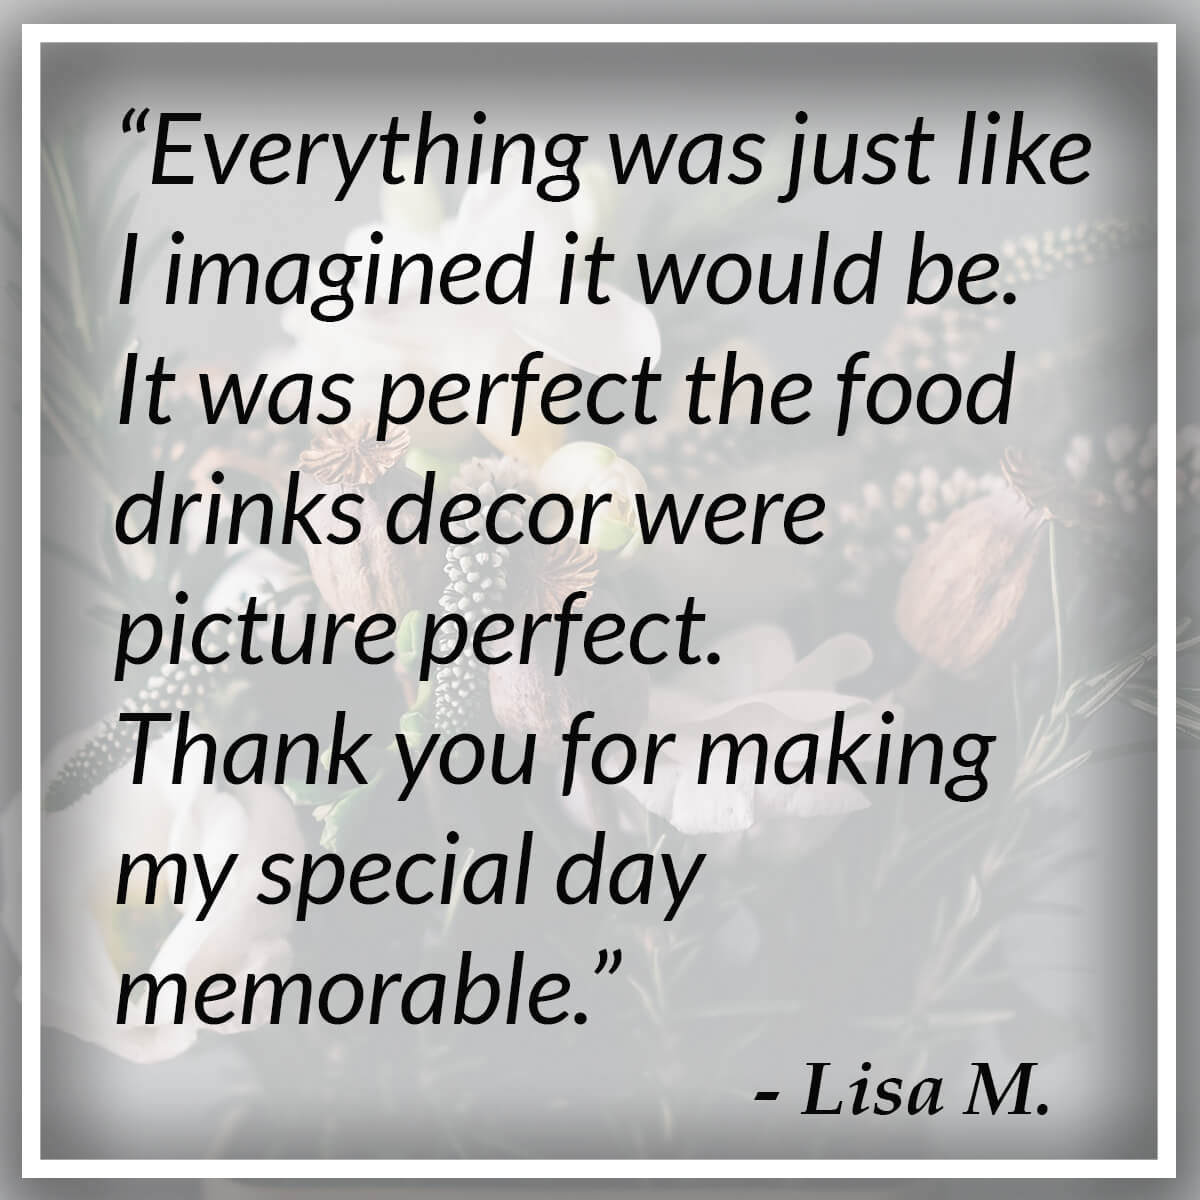 Everything was just like I imagined it would be. It was perfect the food drinks decor were picture perfect. Thank you for making my special day memorable. - Lisa M.